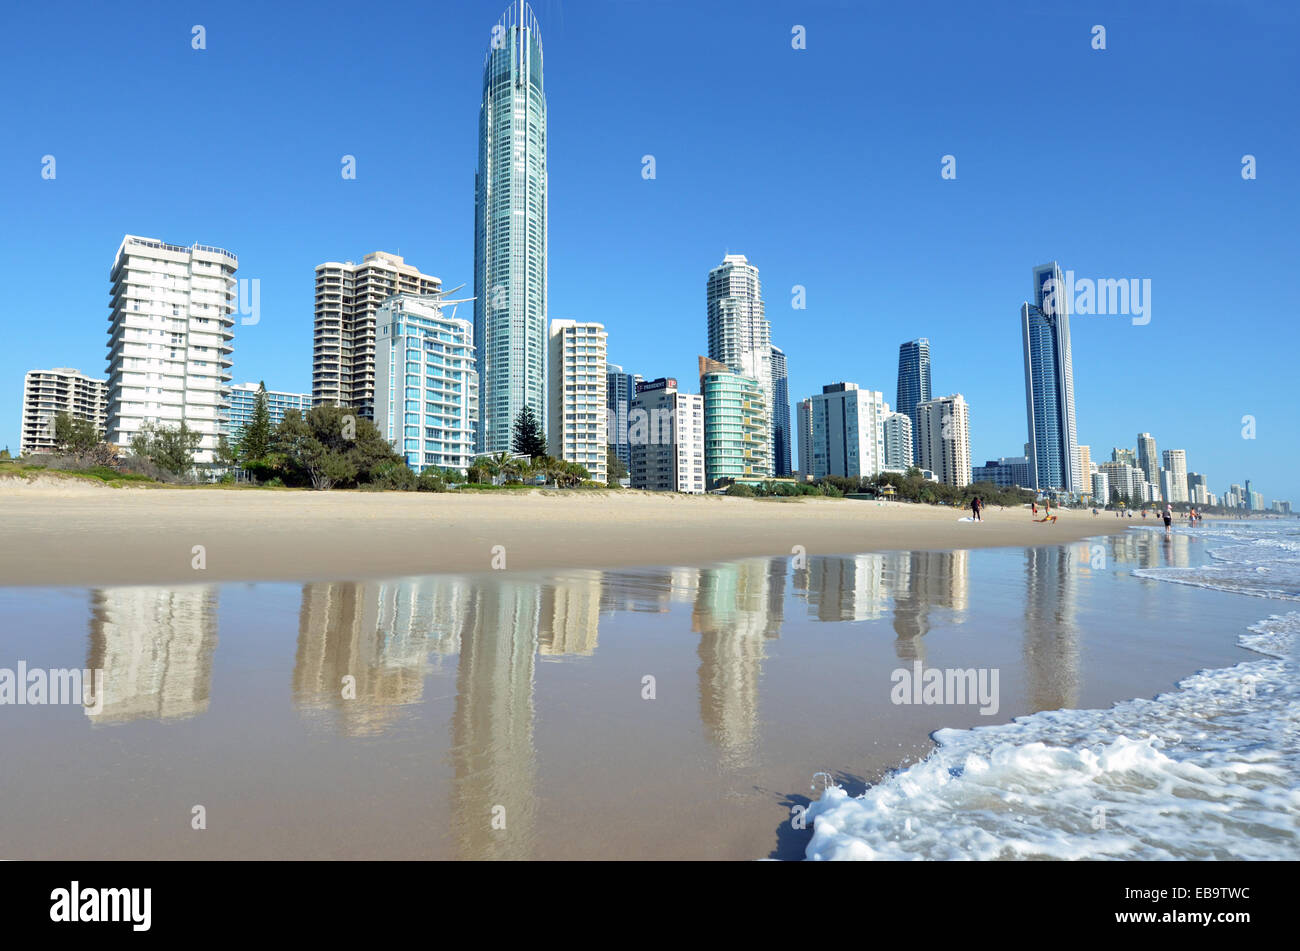 Toits de Surfers Paradise Gold Coast, Queensland en Australie. Photo Stock